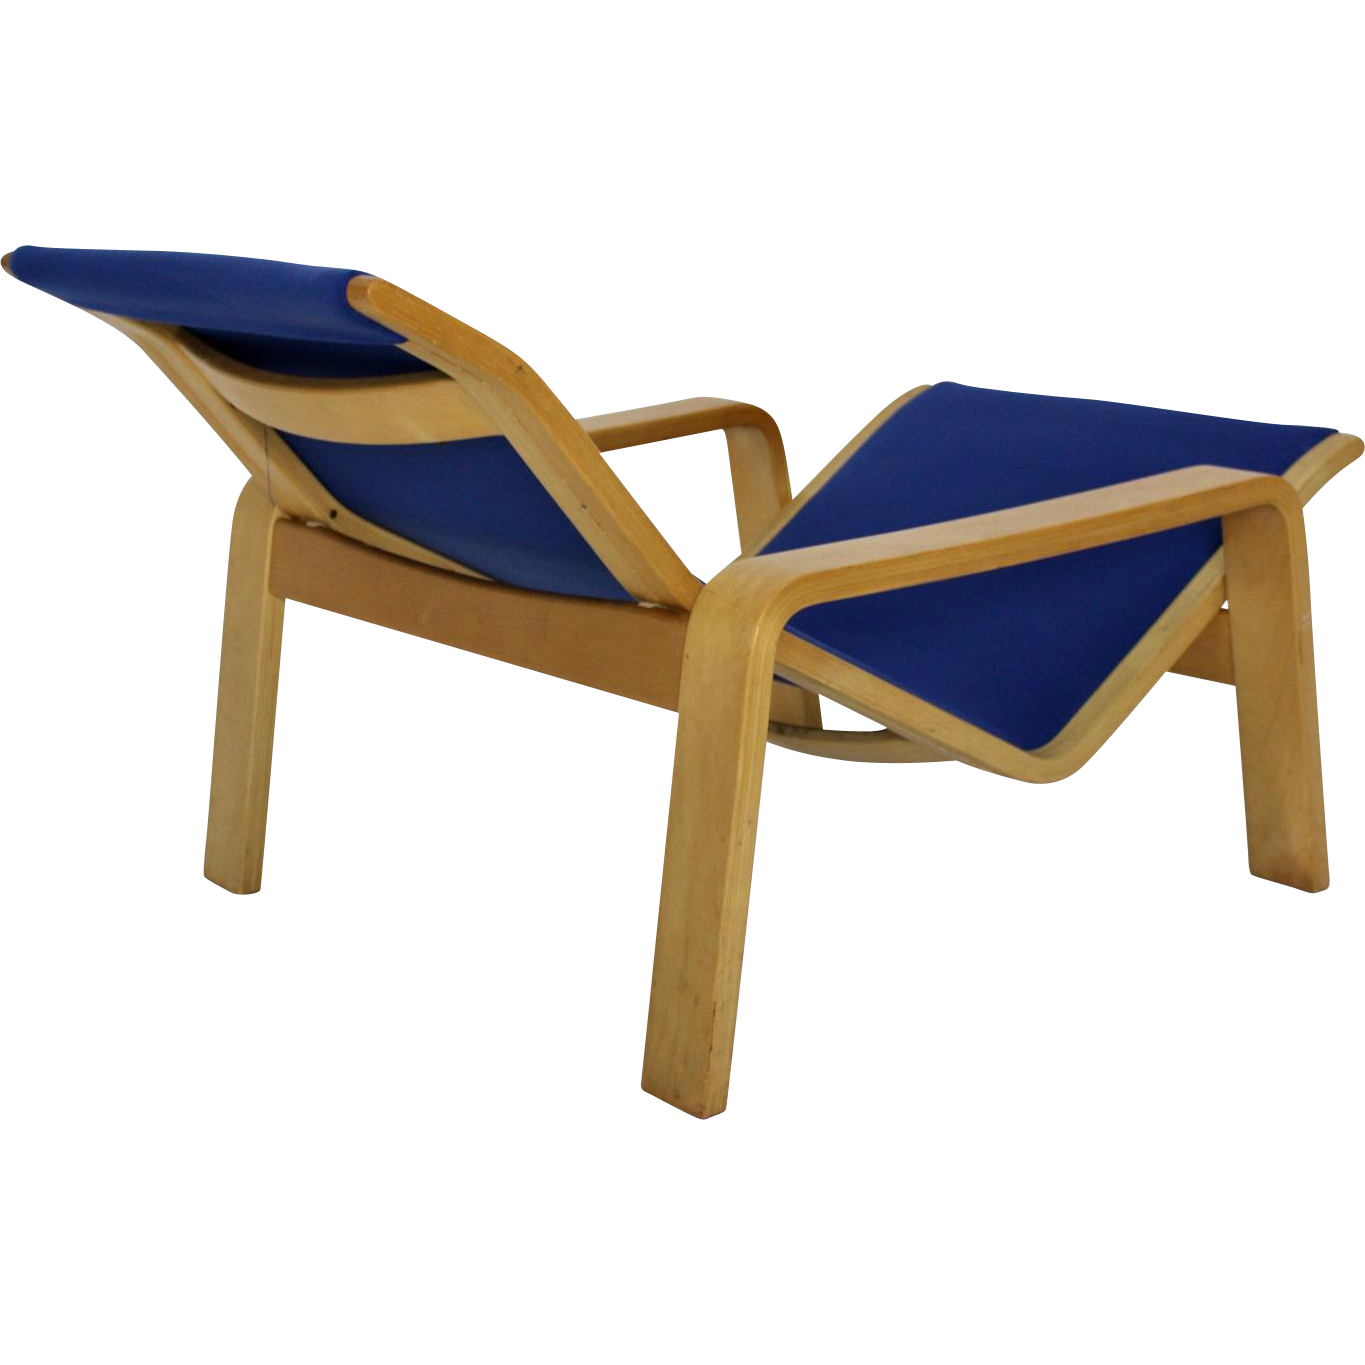 Blue chaise longue pulkka by ilmari lappalainen 1963 for Annabelle chaise